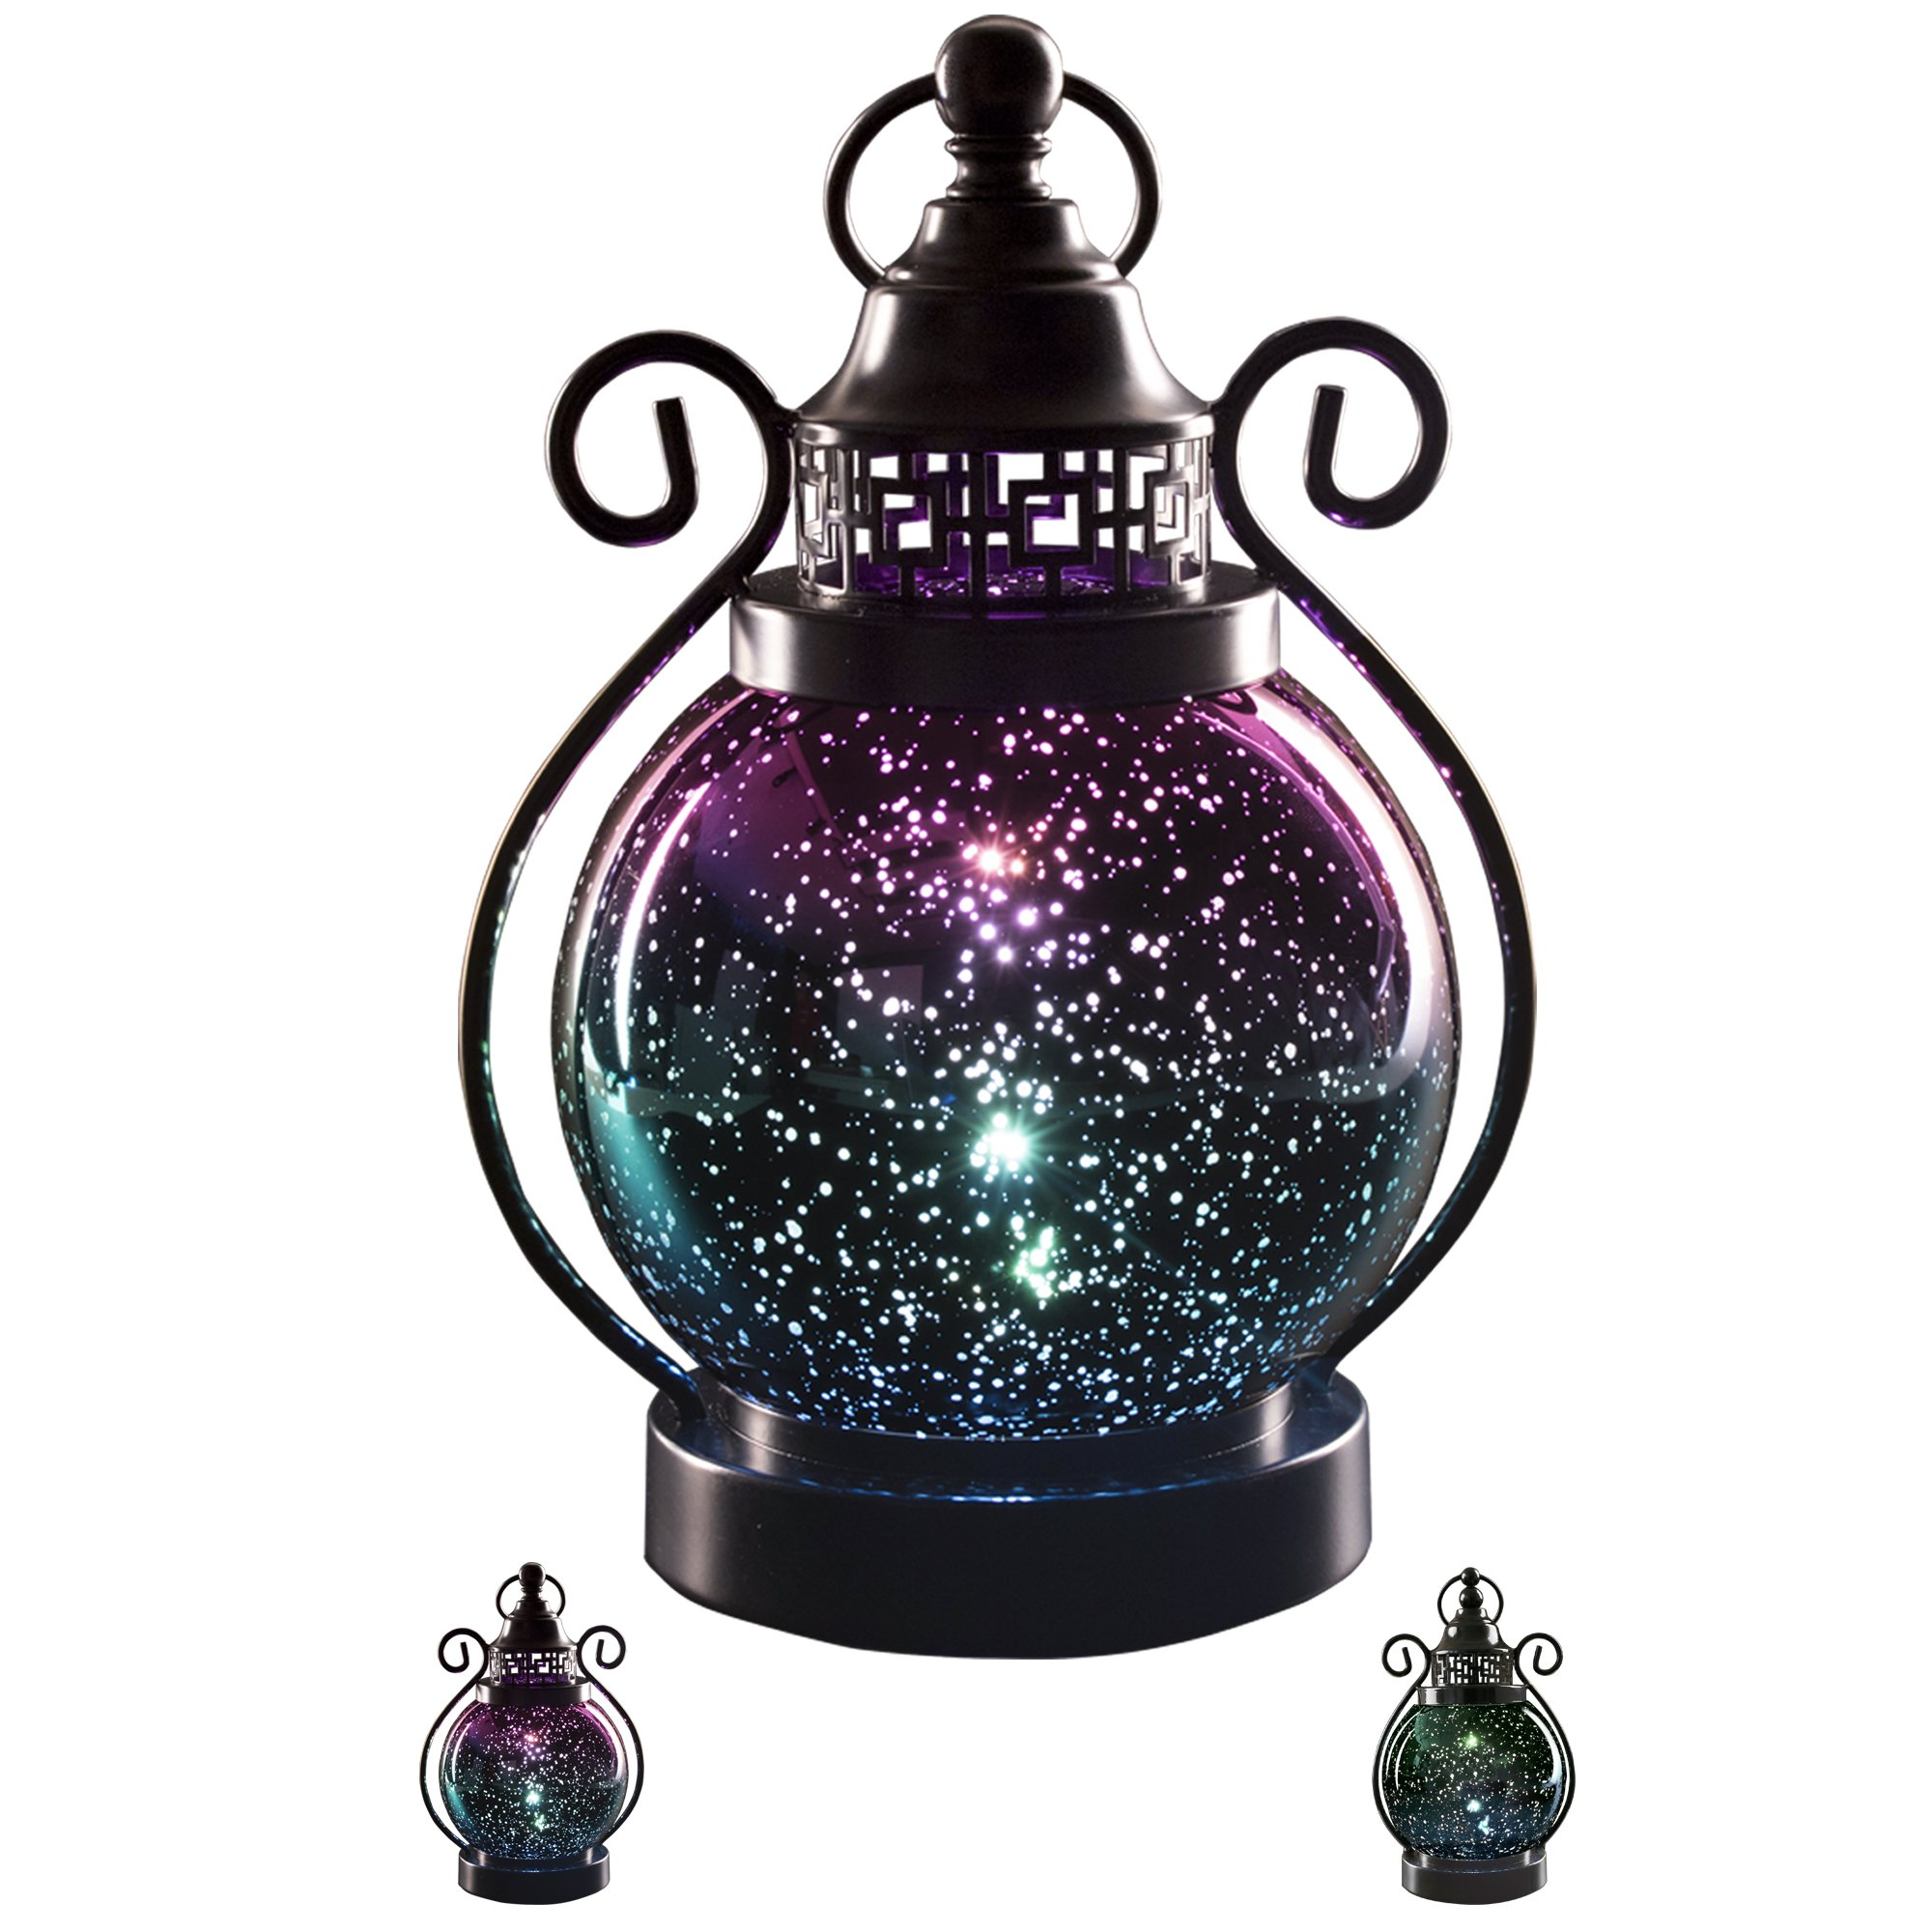 V&M VALERY MADELYN Decorative Candle Lanterns,Mercury Glass Sphere Light,LED Tabletop Lamps,Battery Operated Hanging Lantern for Indoors and Outdoor Decoration 6'' Diameter(Purple)